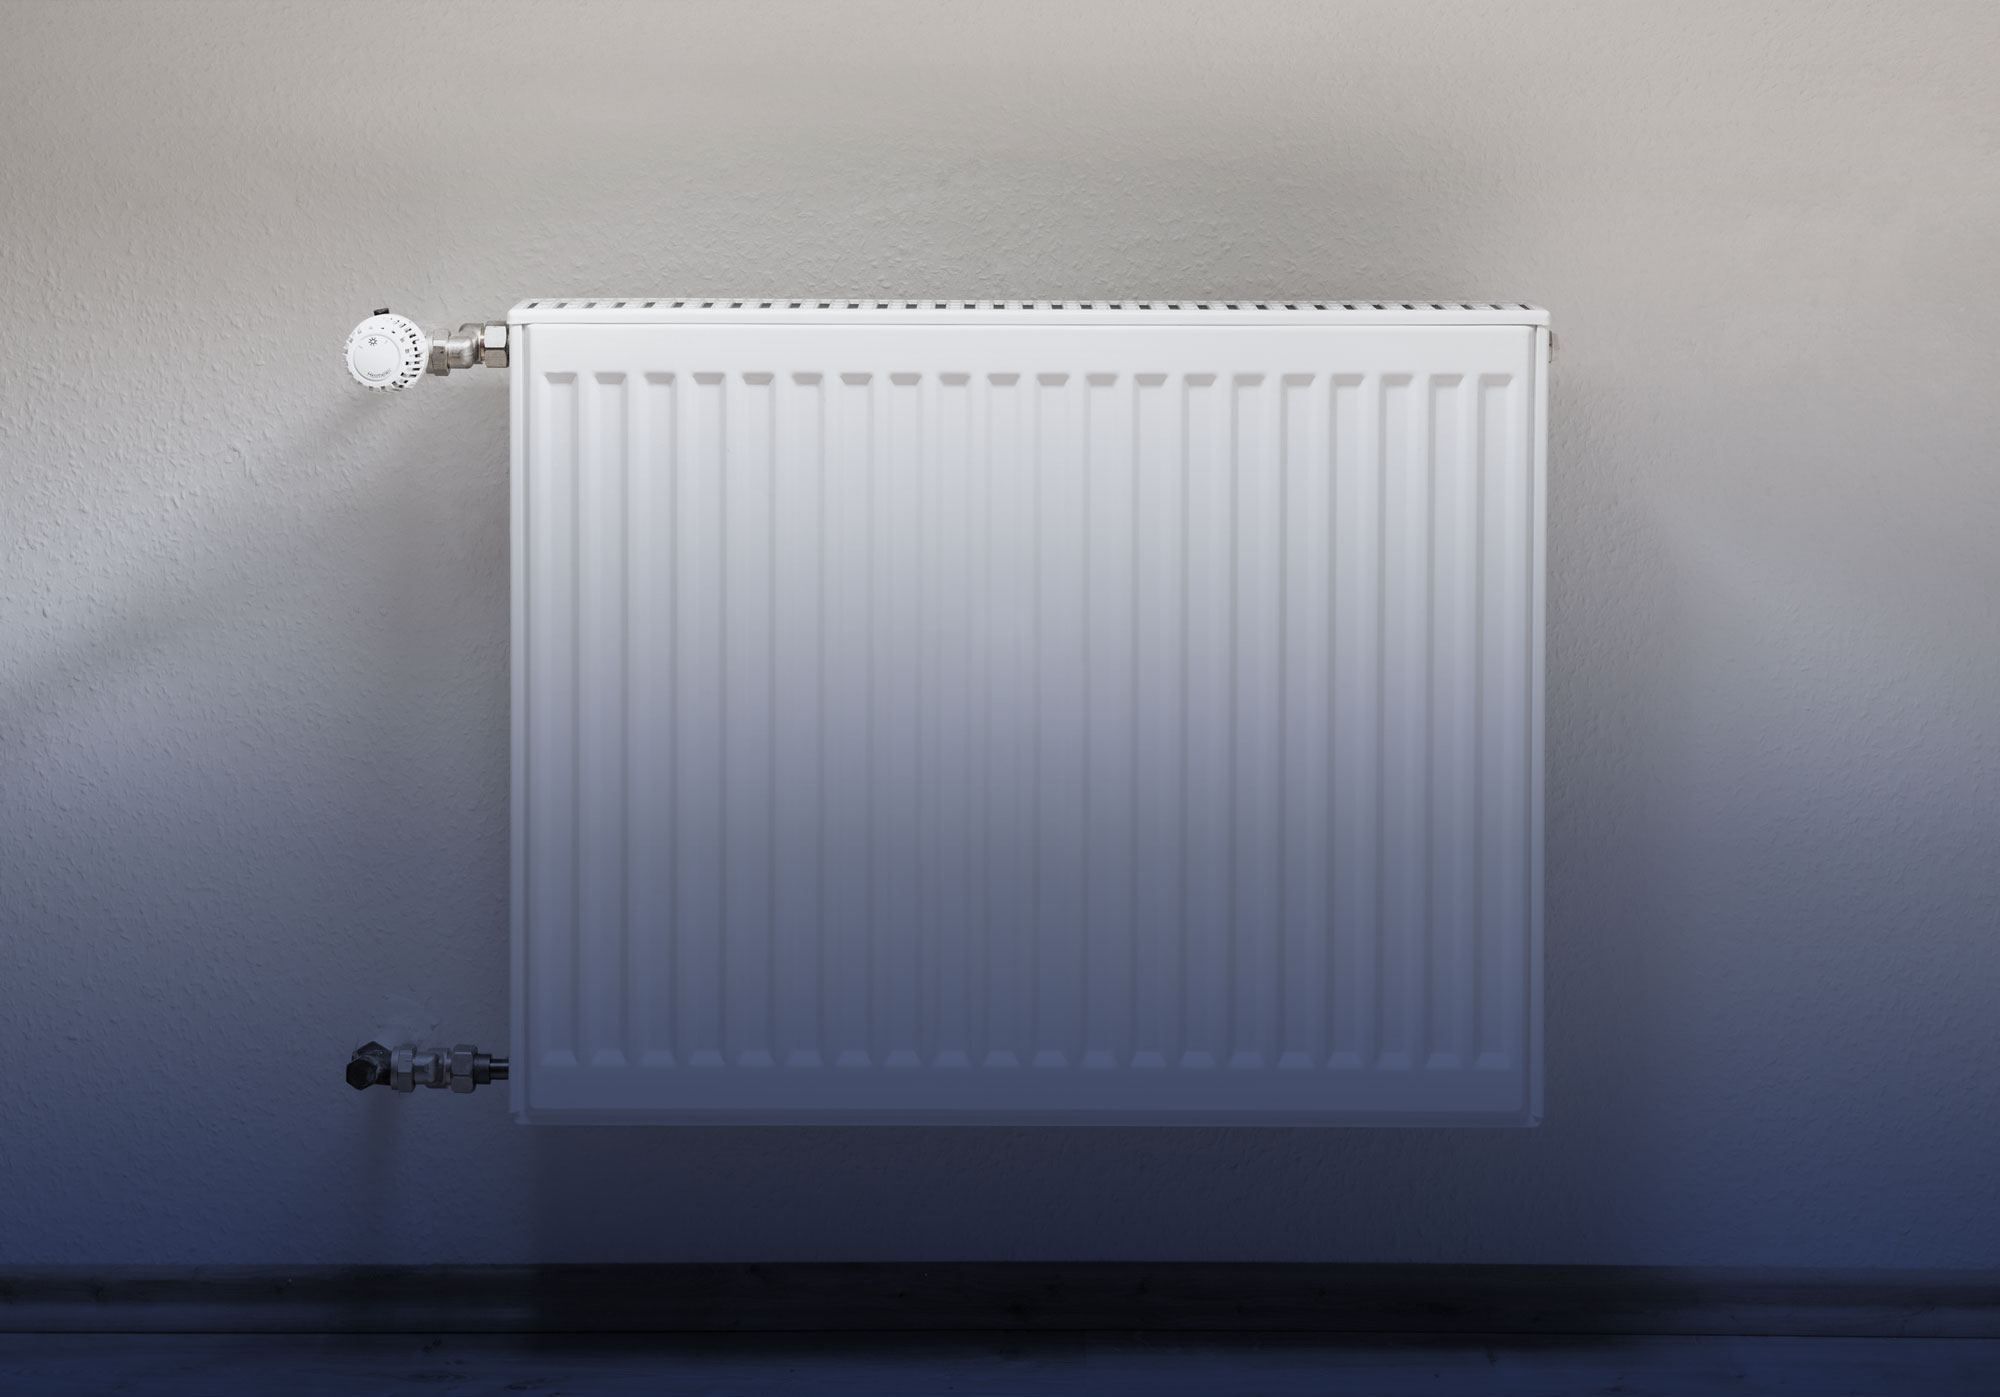 How to Choose a Room Heater That Fits Your Lifestyle